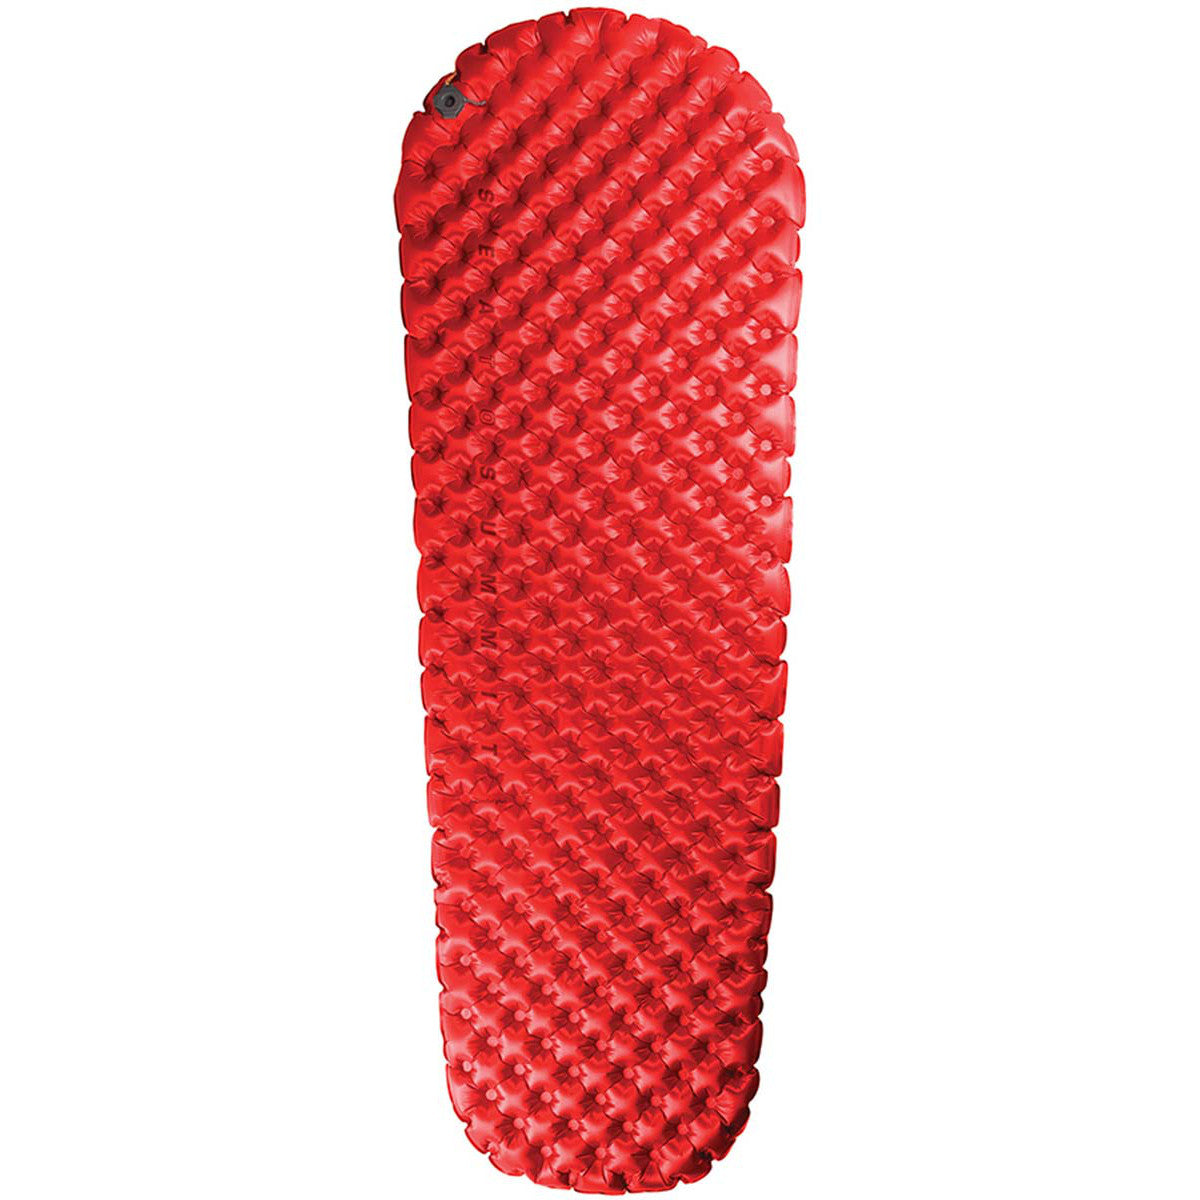 Sea to Summit Comfort Plus Insulated sleeping mat, shown inflated and laid flat in red colour